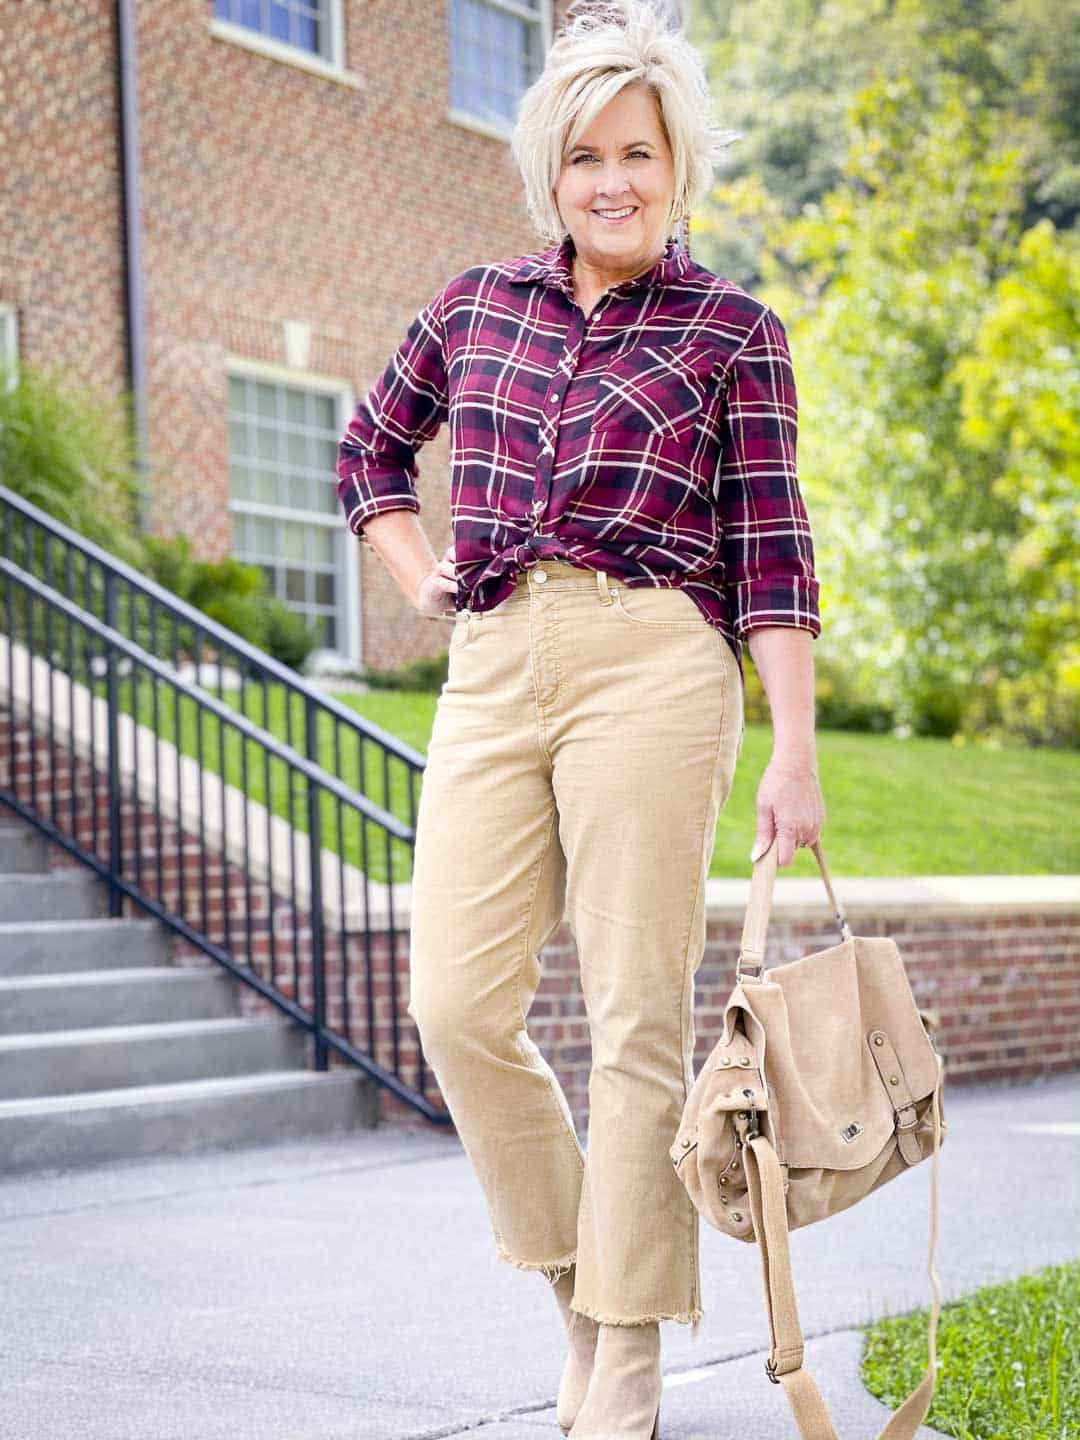 Over 40 Fashion Blogger, Tania Stephens is wearing a wine plaid flannel shirt tied at the waist with crop jeans to show how to get the most out of your wardrobe